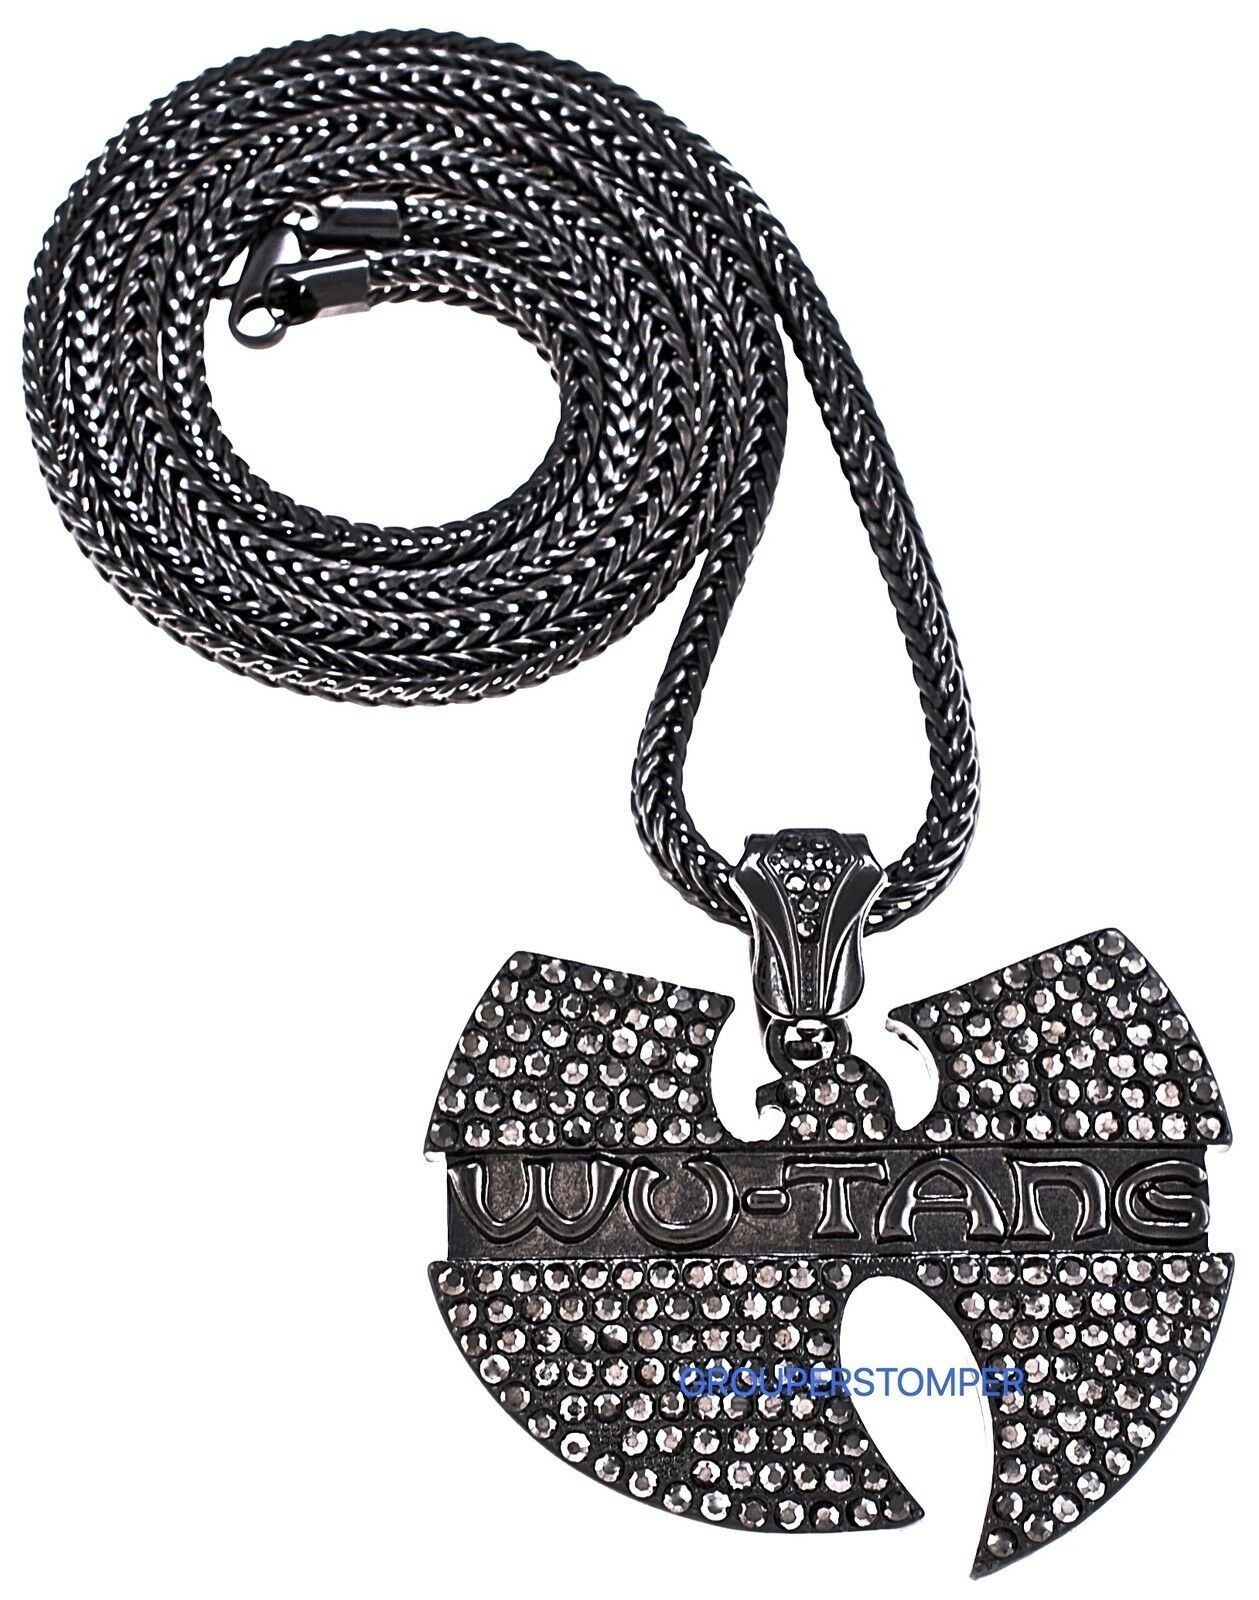 """WU-TANG Necklace New Rhinestone Hip Hop Pendant And 36"""" Franco Style 4mm Chain  - $34.94 - $35.00"""